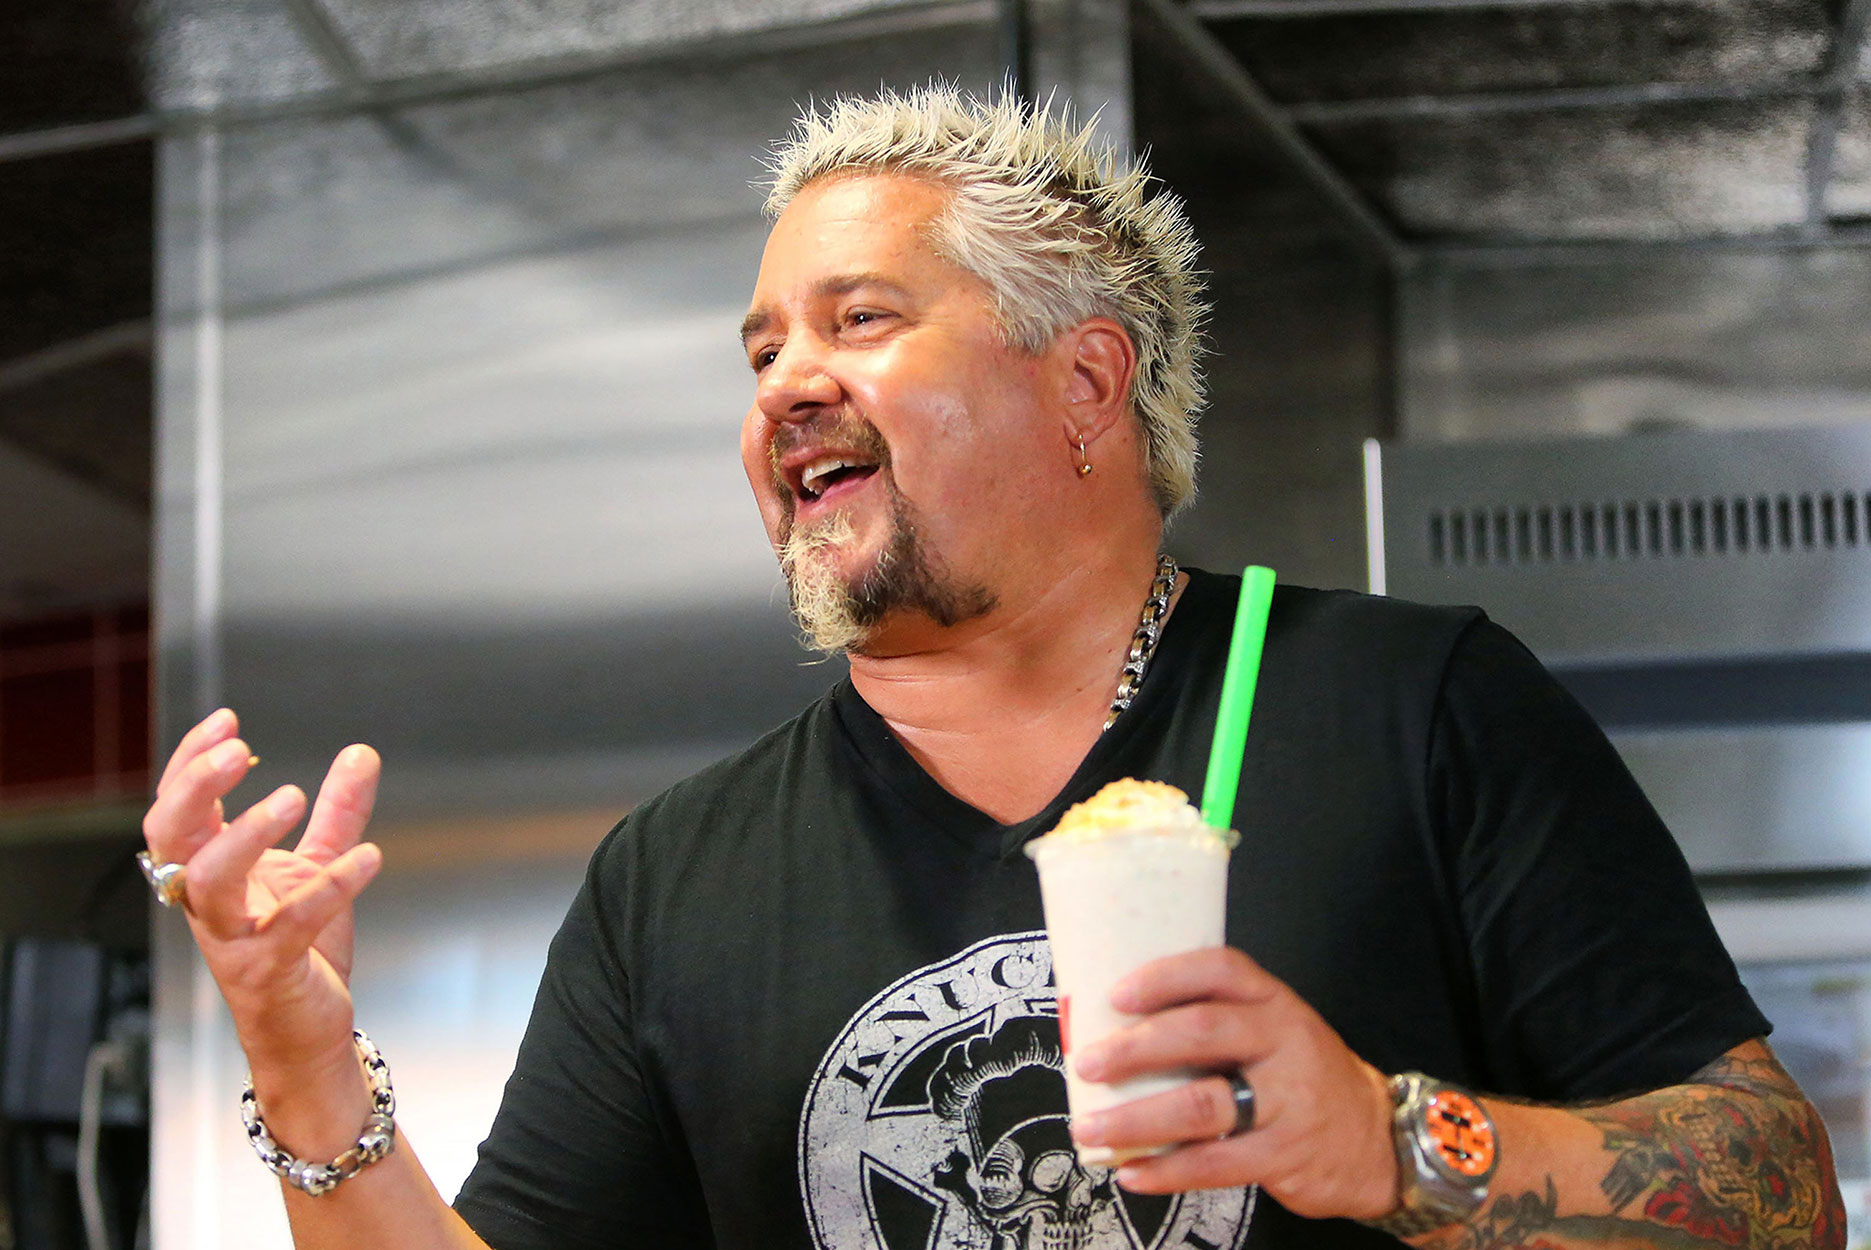 Colombus Rename to Flavortown for Guy Fieri